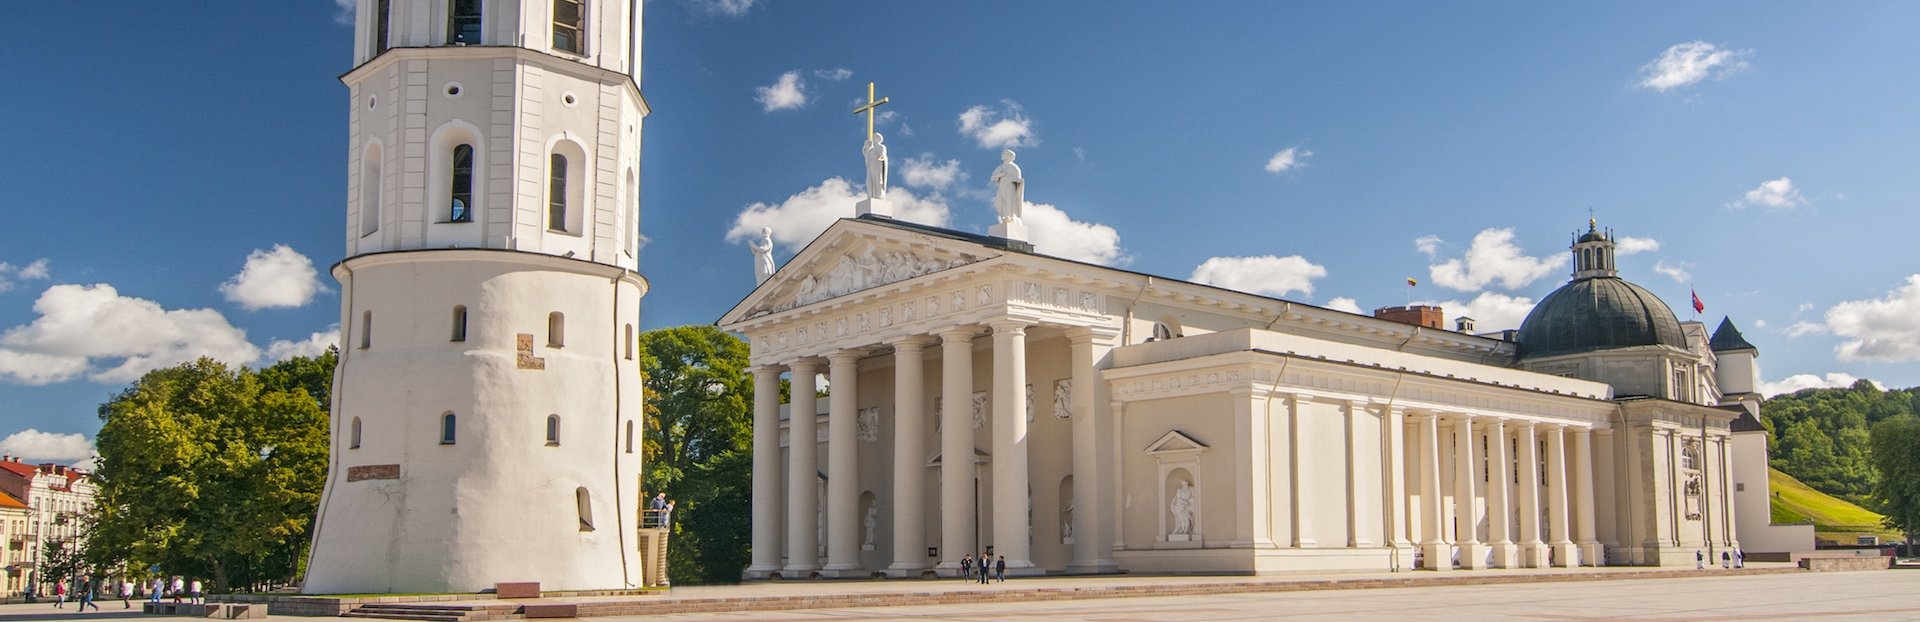 Vilnius audio tour: Walk the old town of Vilnius: from Cathedral Square to the Gate of Dawn